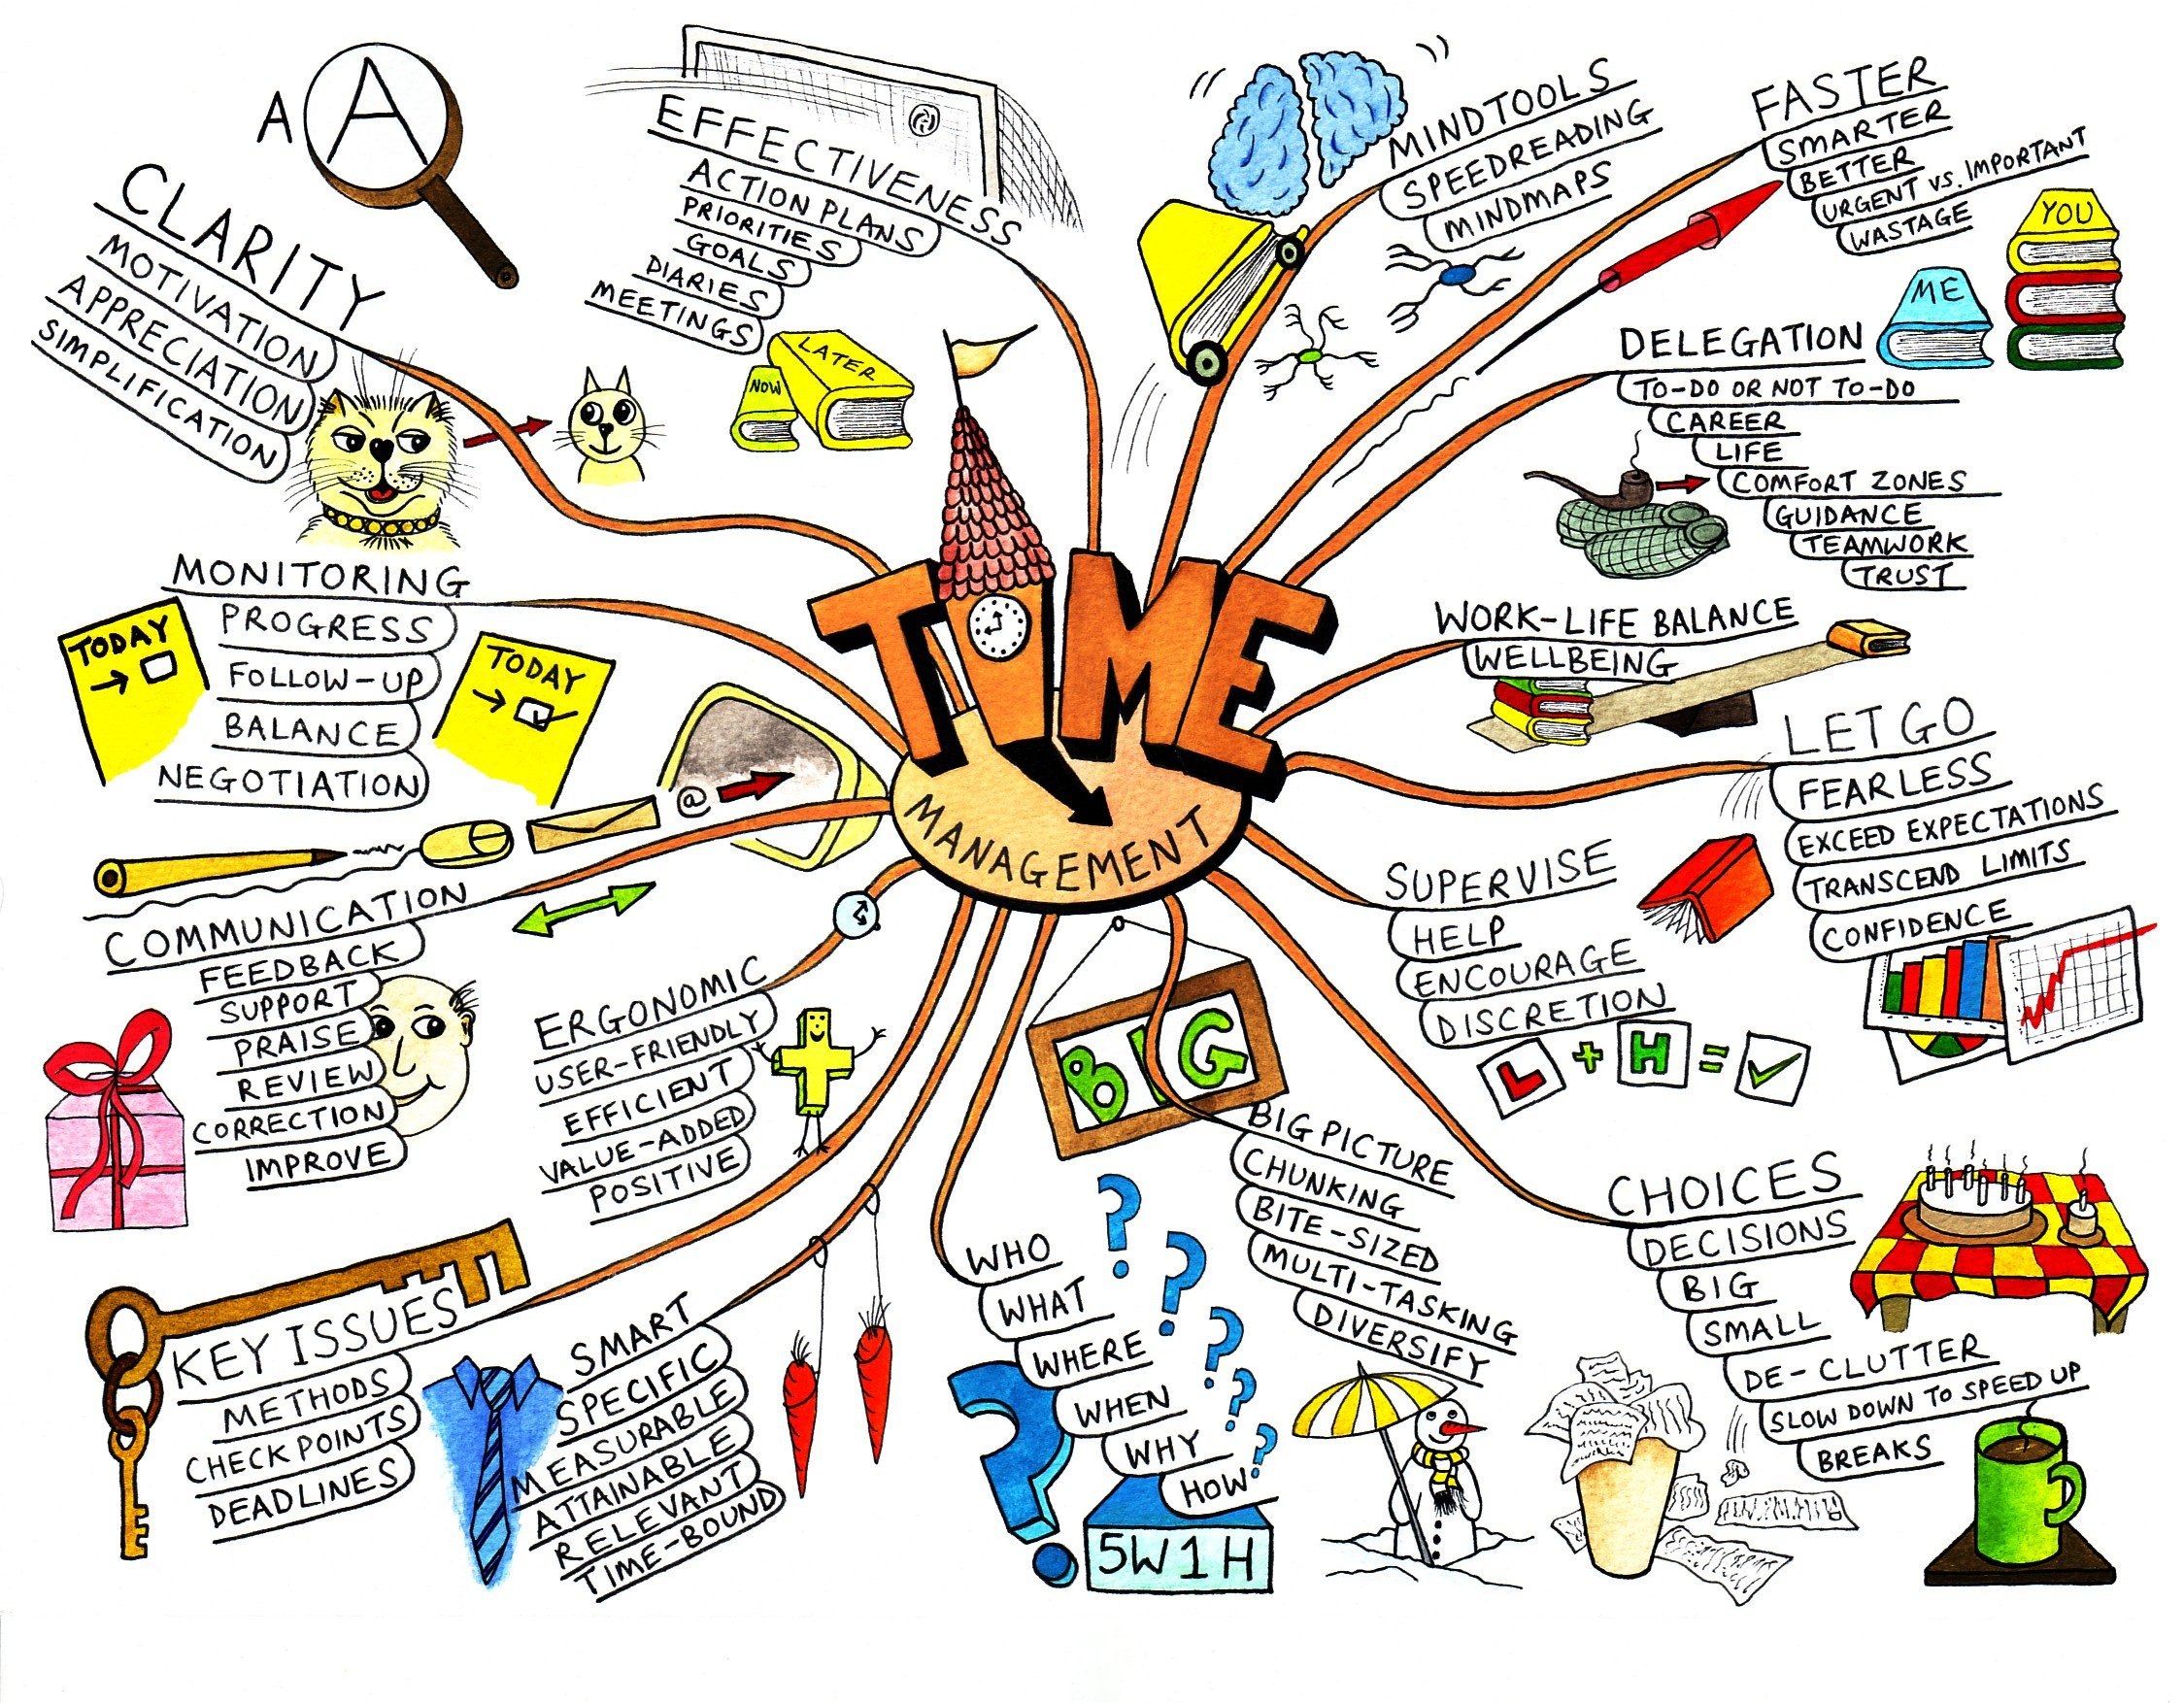 Intu00e9ru00eat du Mind-mapping - COLLECTIF FORMATION